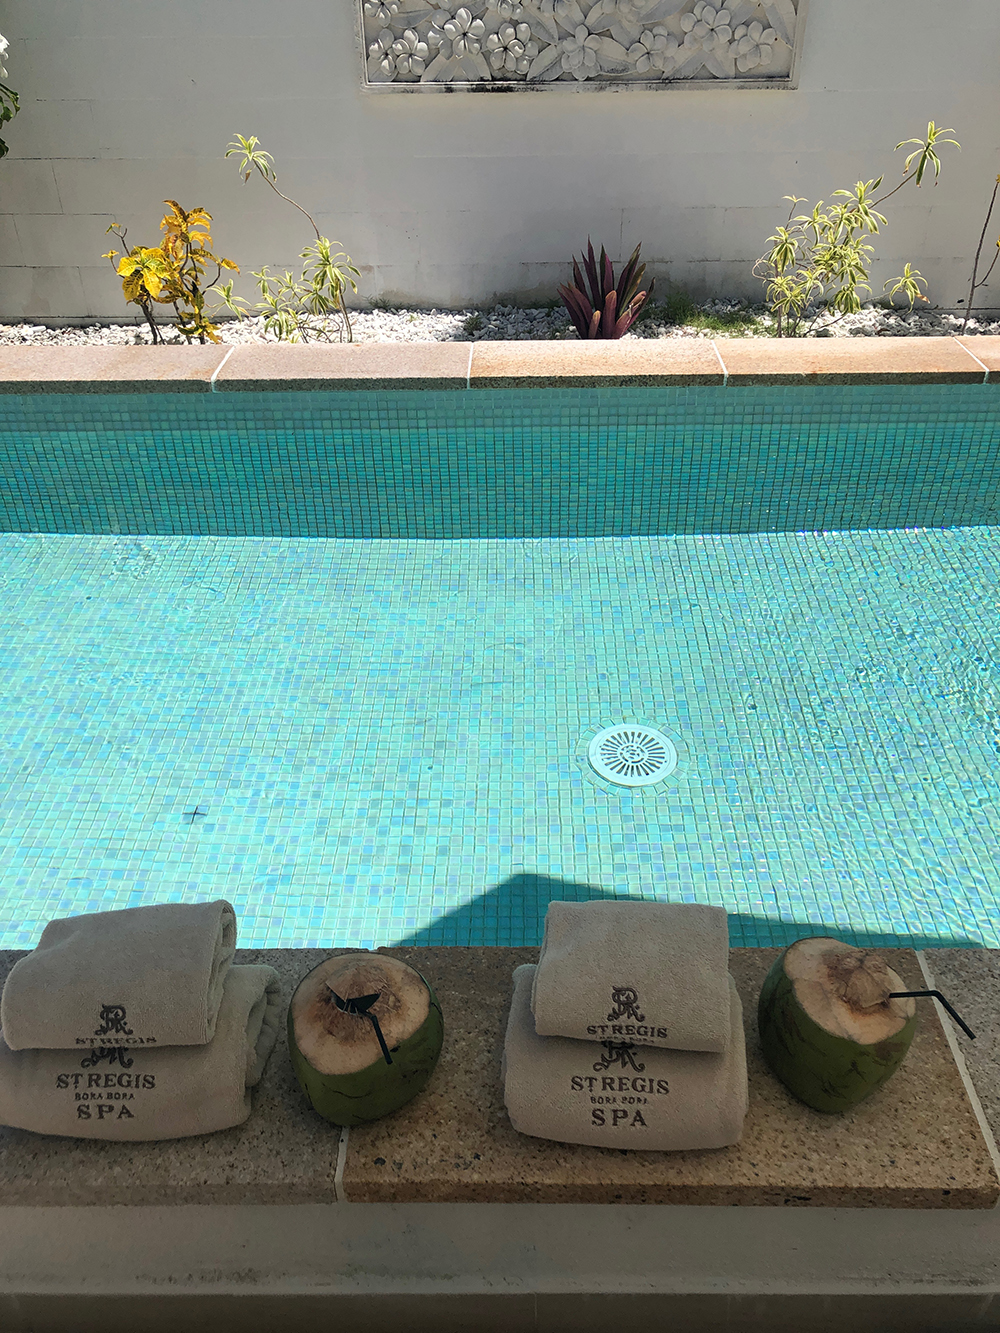 Fresh towels and coconuts awaited us after our spa treatments.